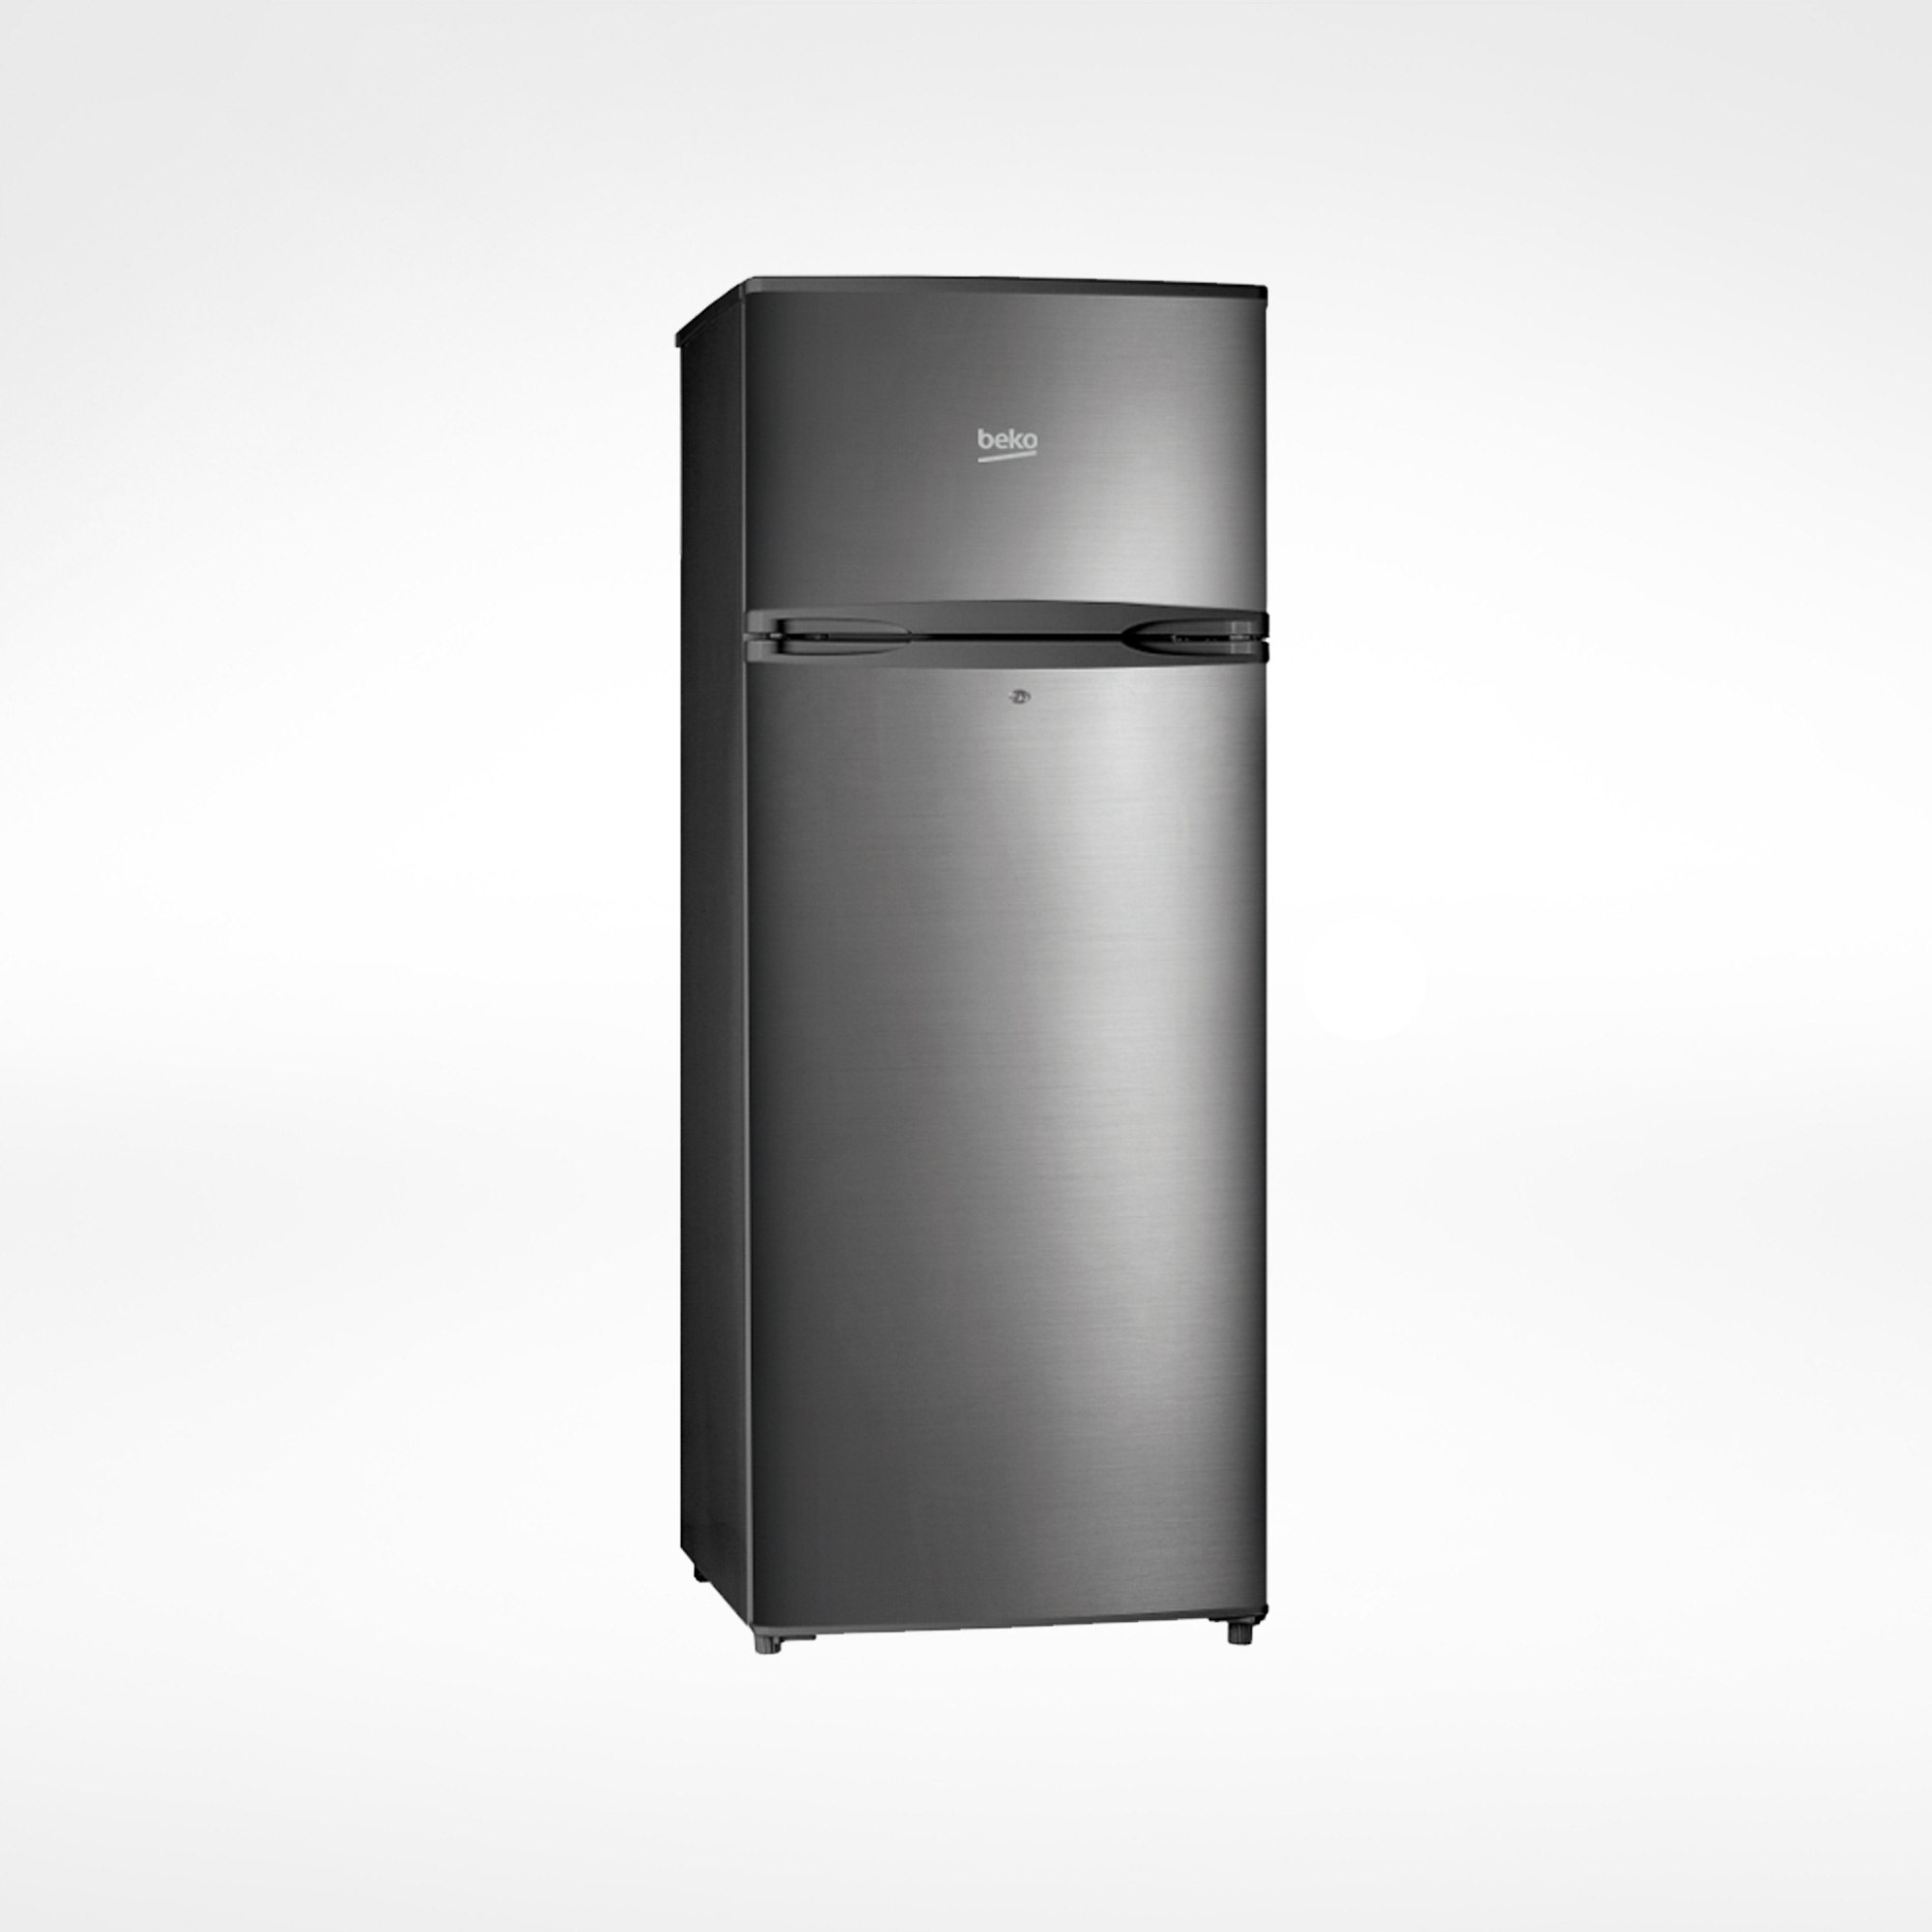 Beko BAD228 UK Refrigerator1